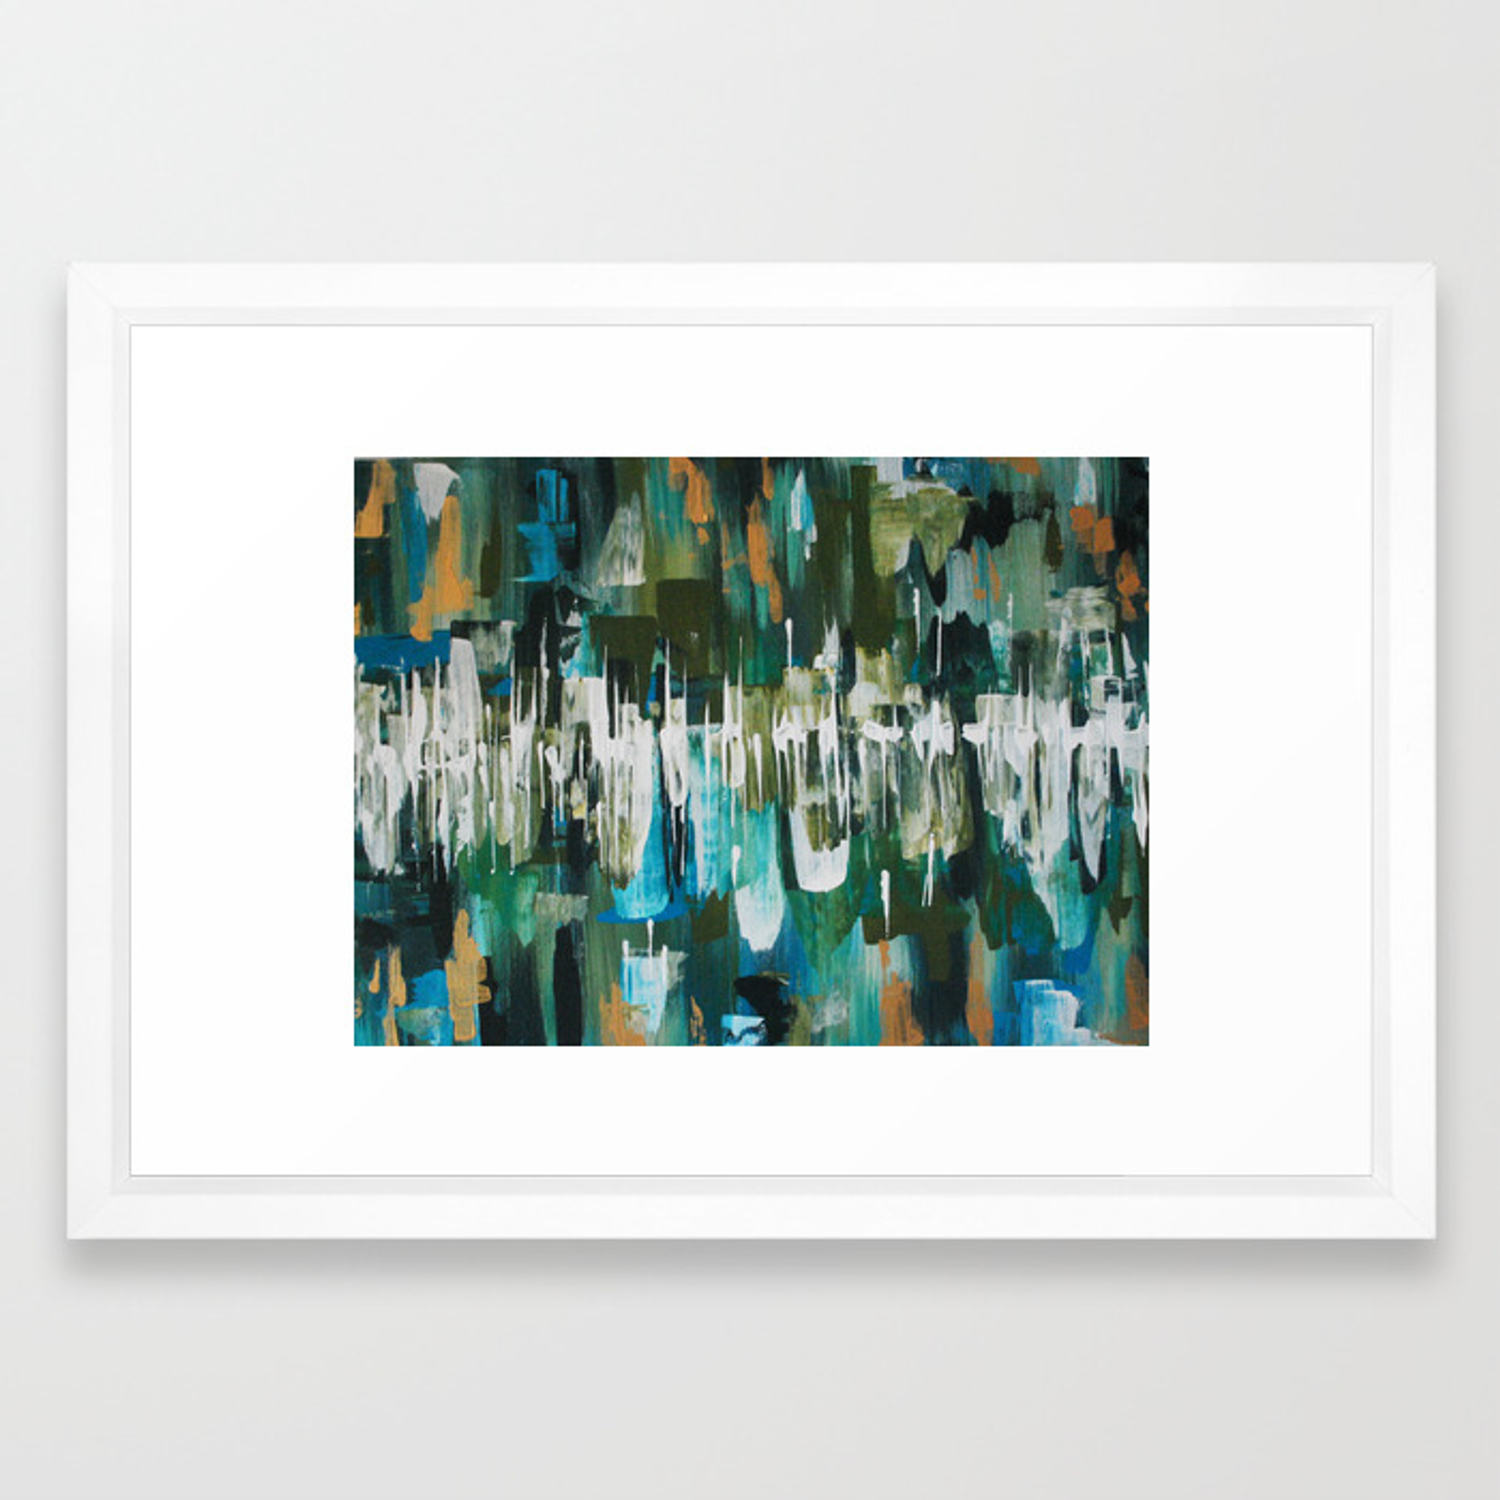 Acrylic blue green and gold abstract painting framed art print